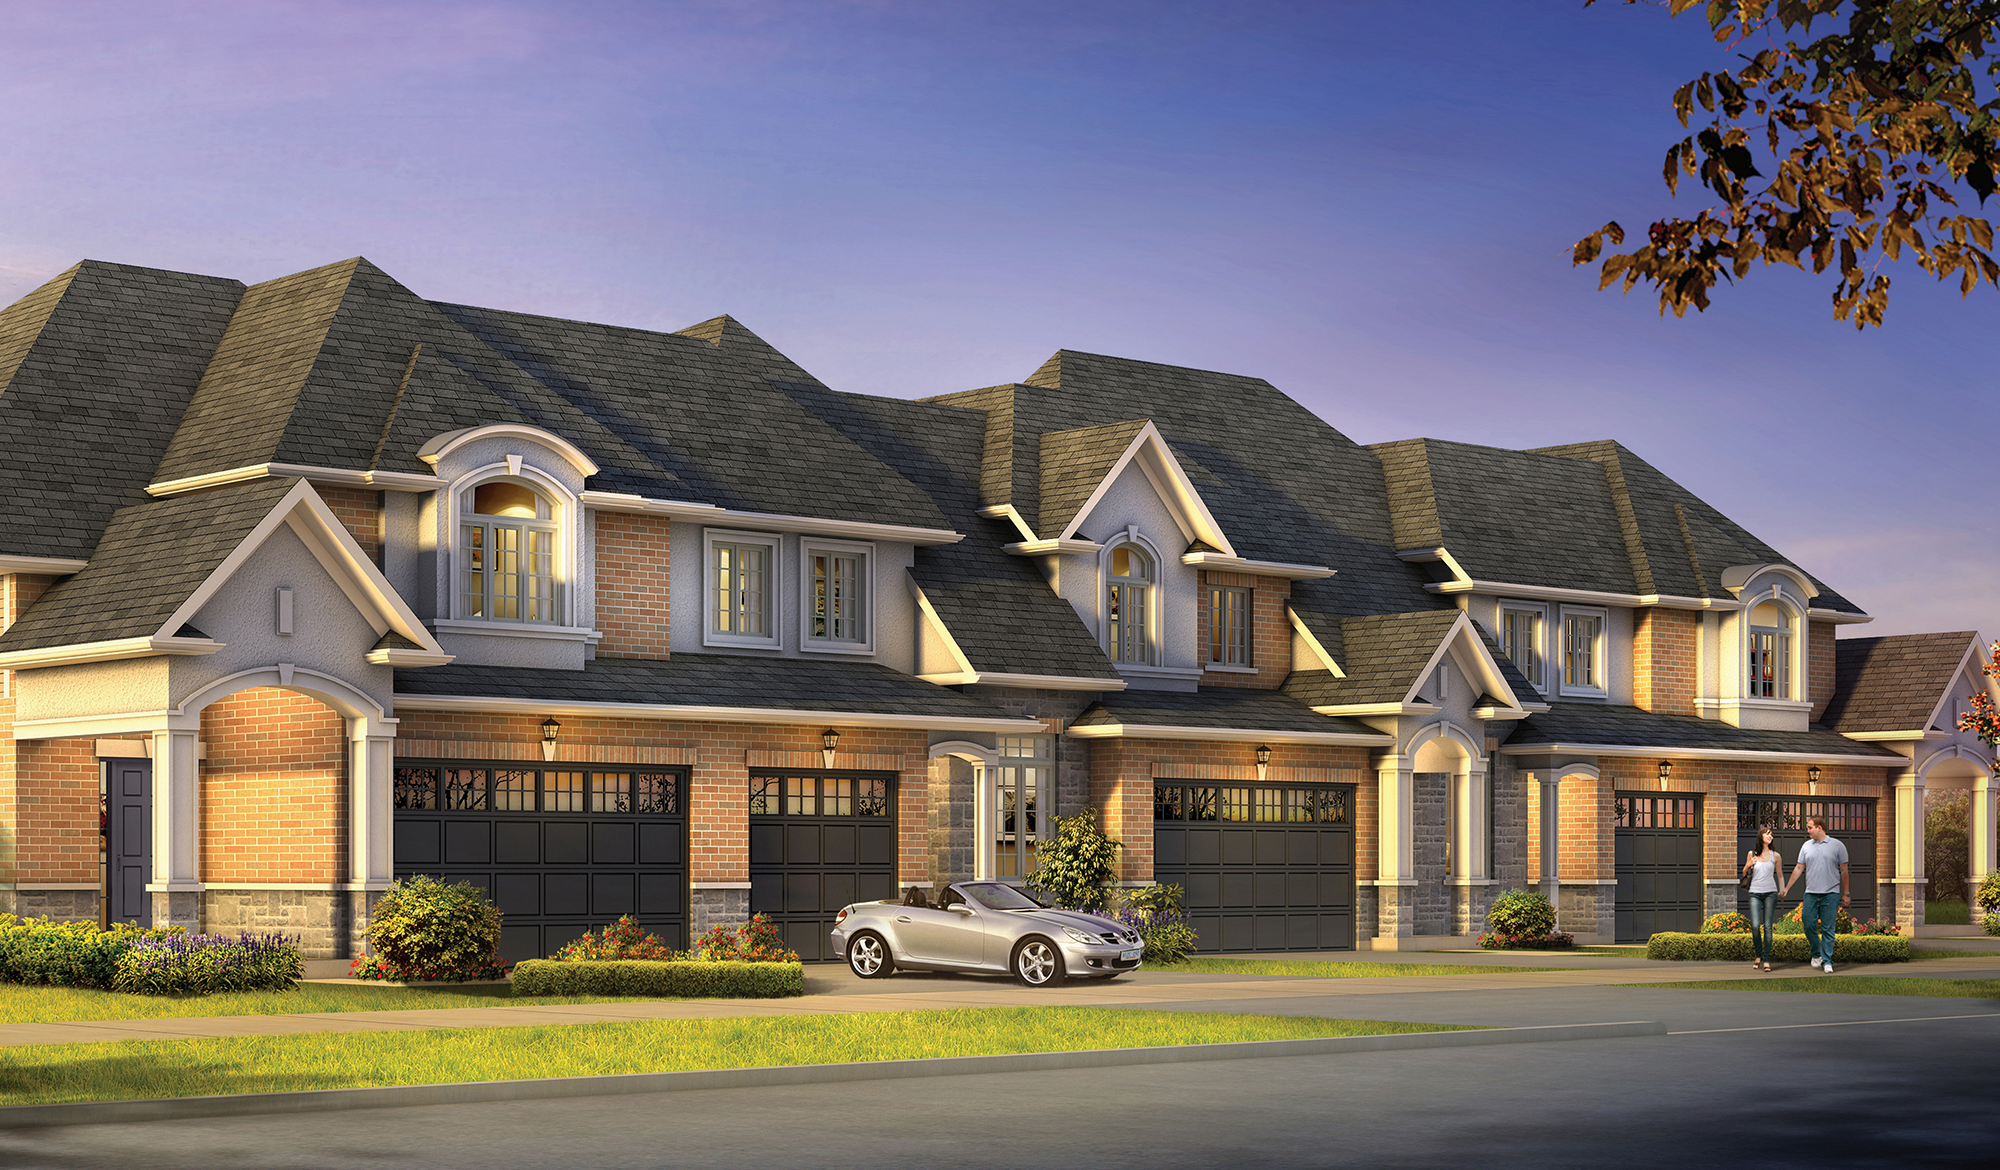 Row of Paradise Townes homes